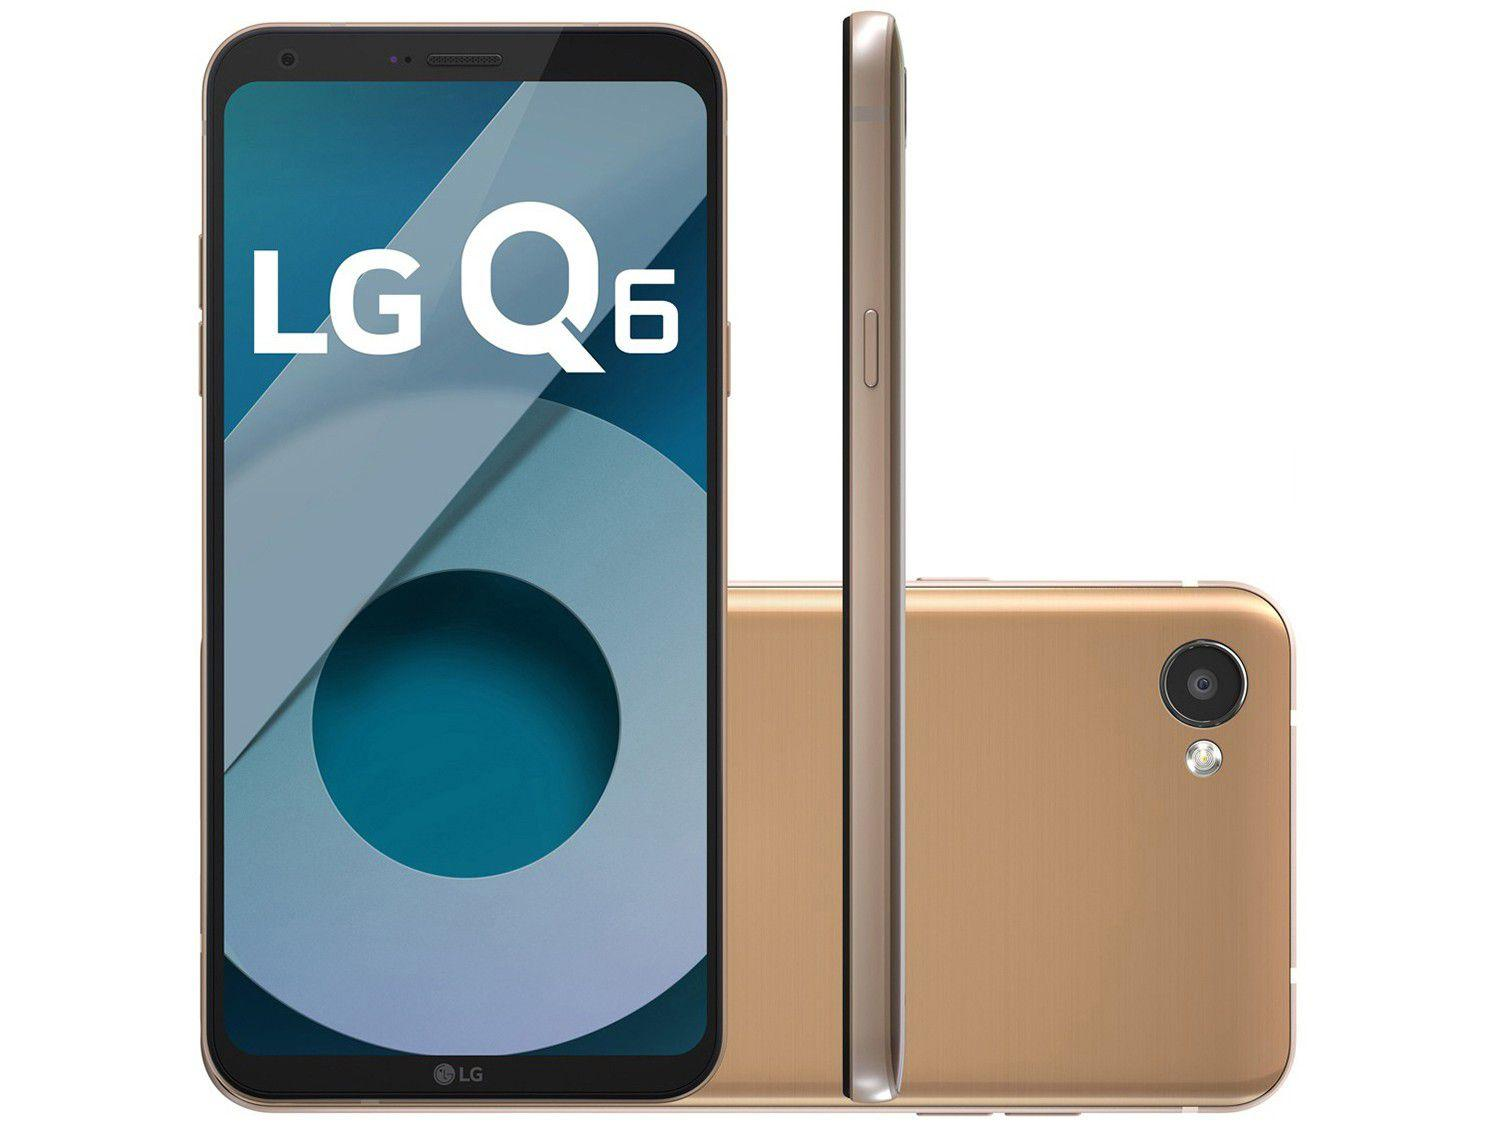 Smartphone Lg Q6 32gb Rose Gold Dual Chip 4g Cm 13mp Selfie Led 29 Mt 47 A 2